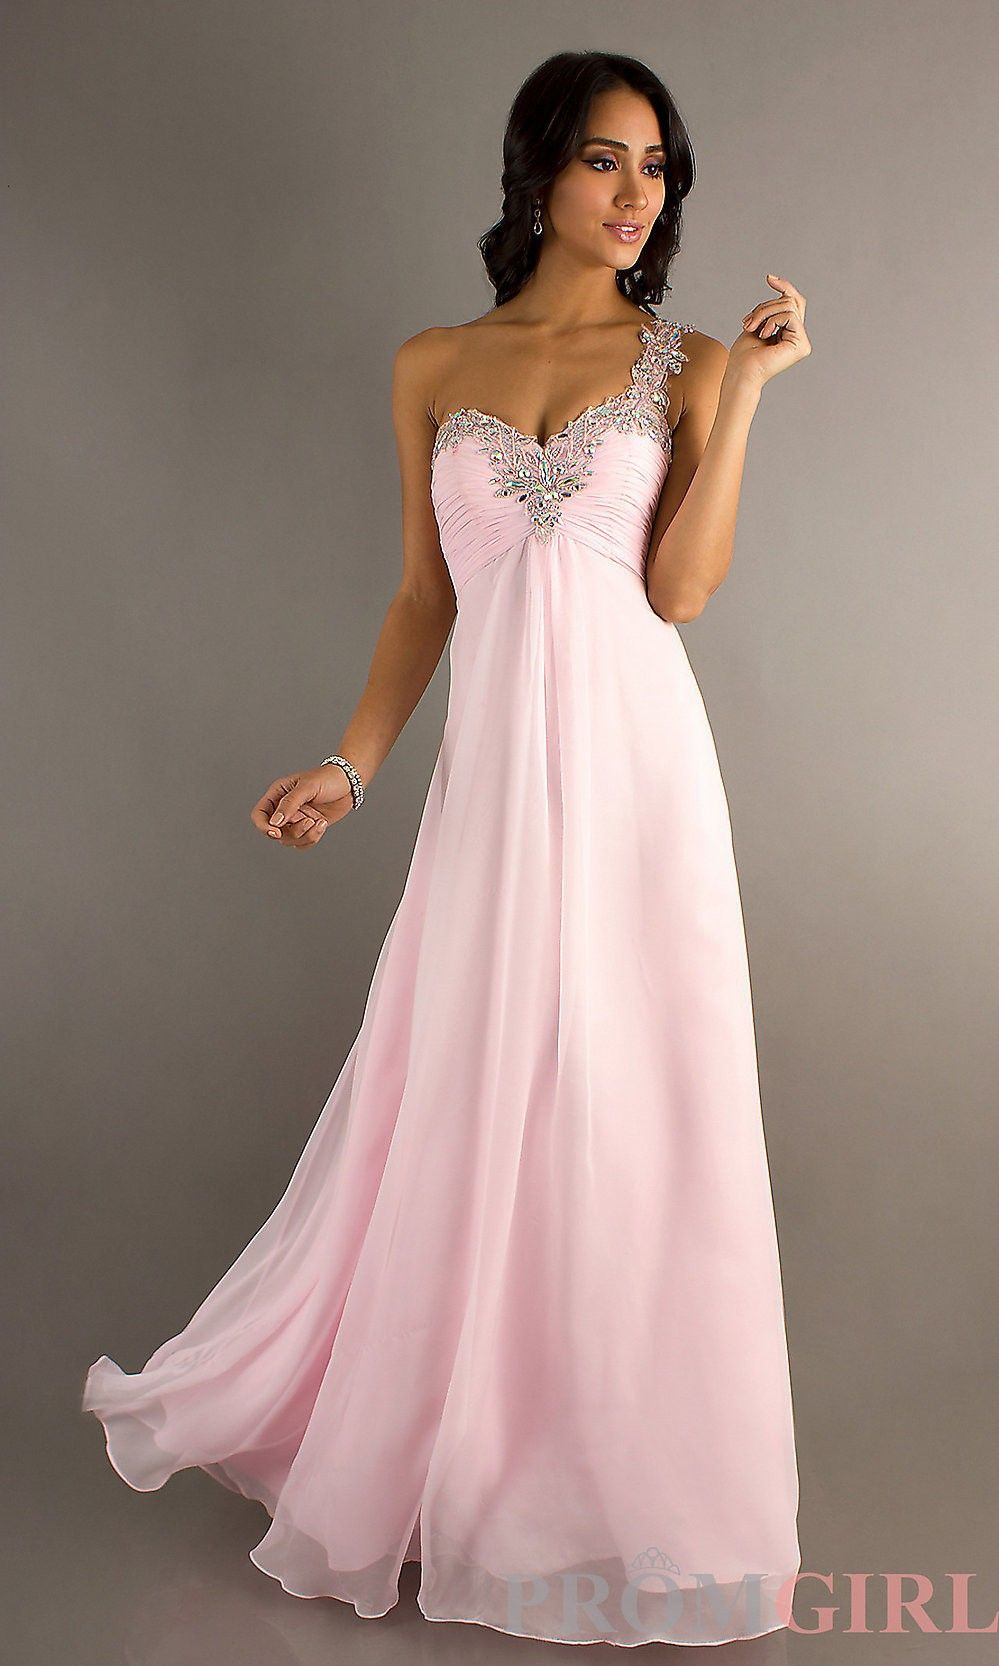 Light Pink Prom Dress With Straps Google Search Super Cute